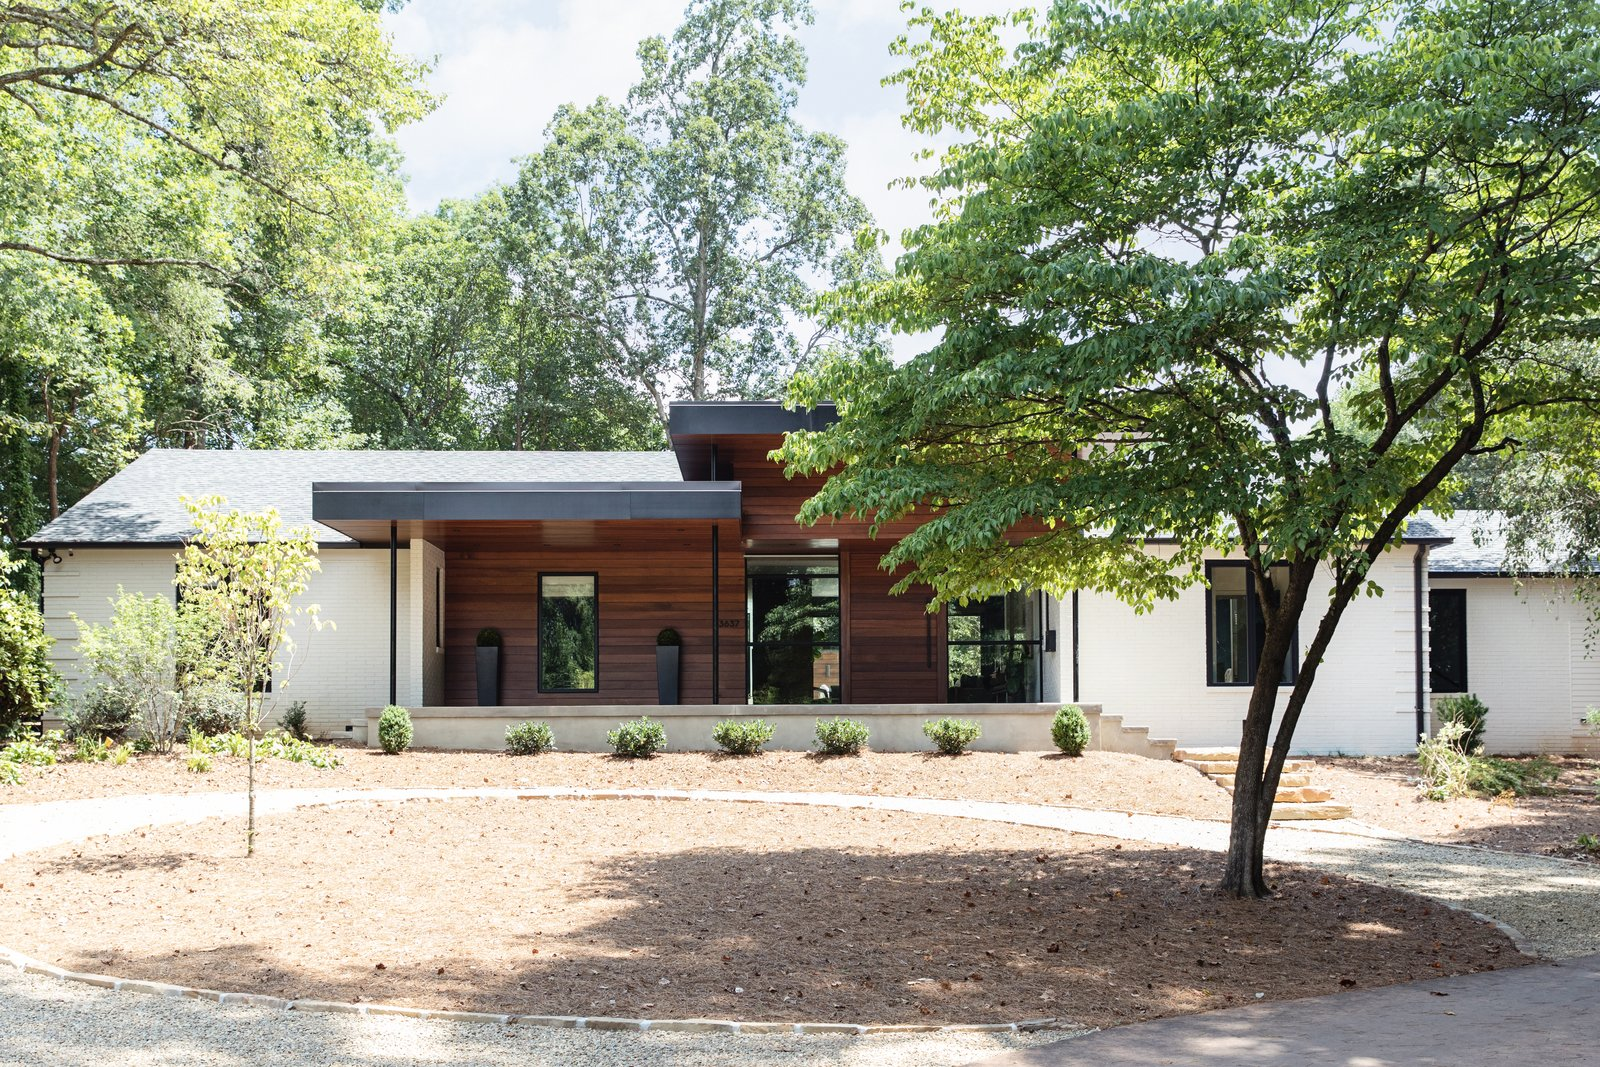 Exterior, Wood Siding Material, Metal Roof Material, Hipped RoofLine, House Building Type, and Mid-Century Building Type New, modern entry of residence (formerly a traditional, ranch home)  Guinn/Henderson Residence